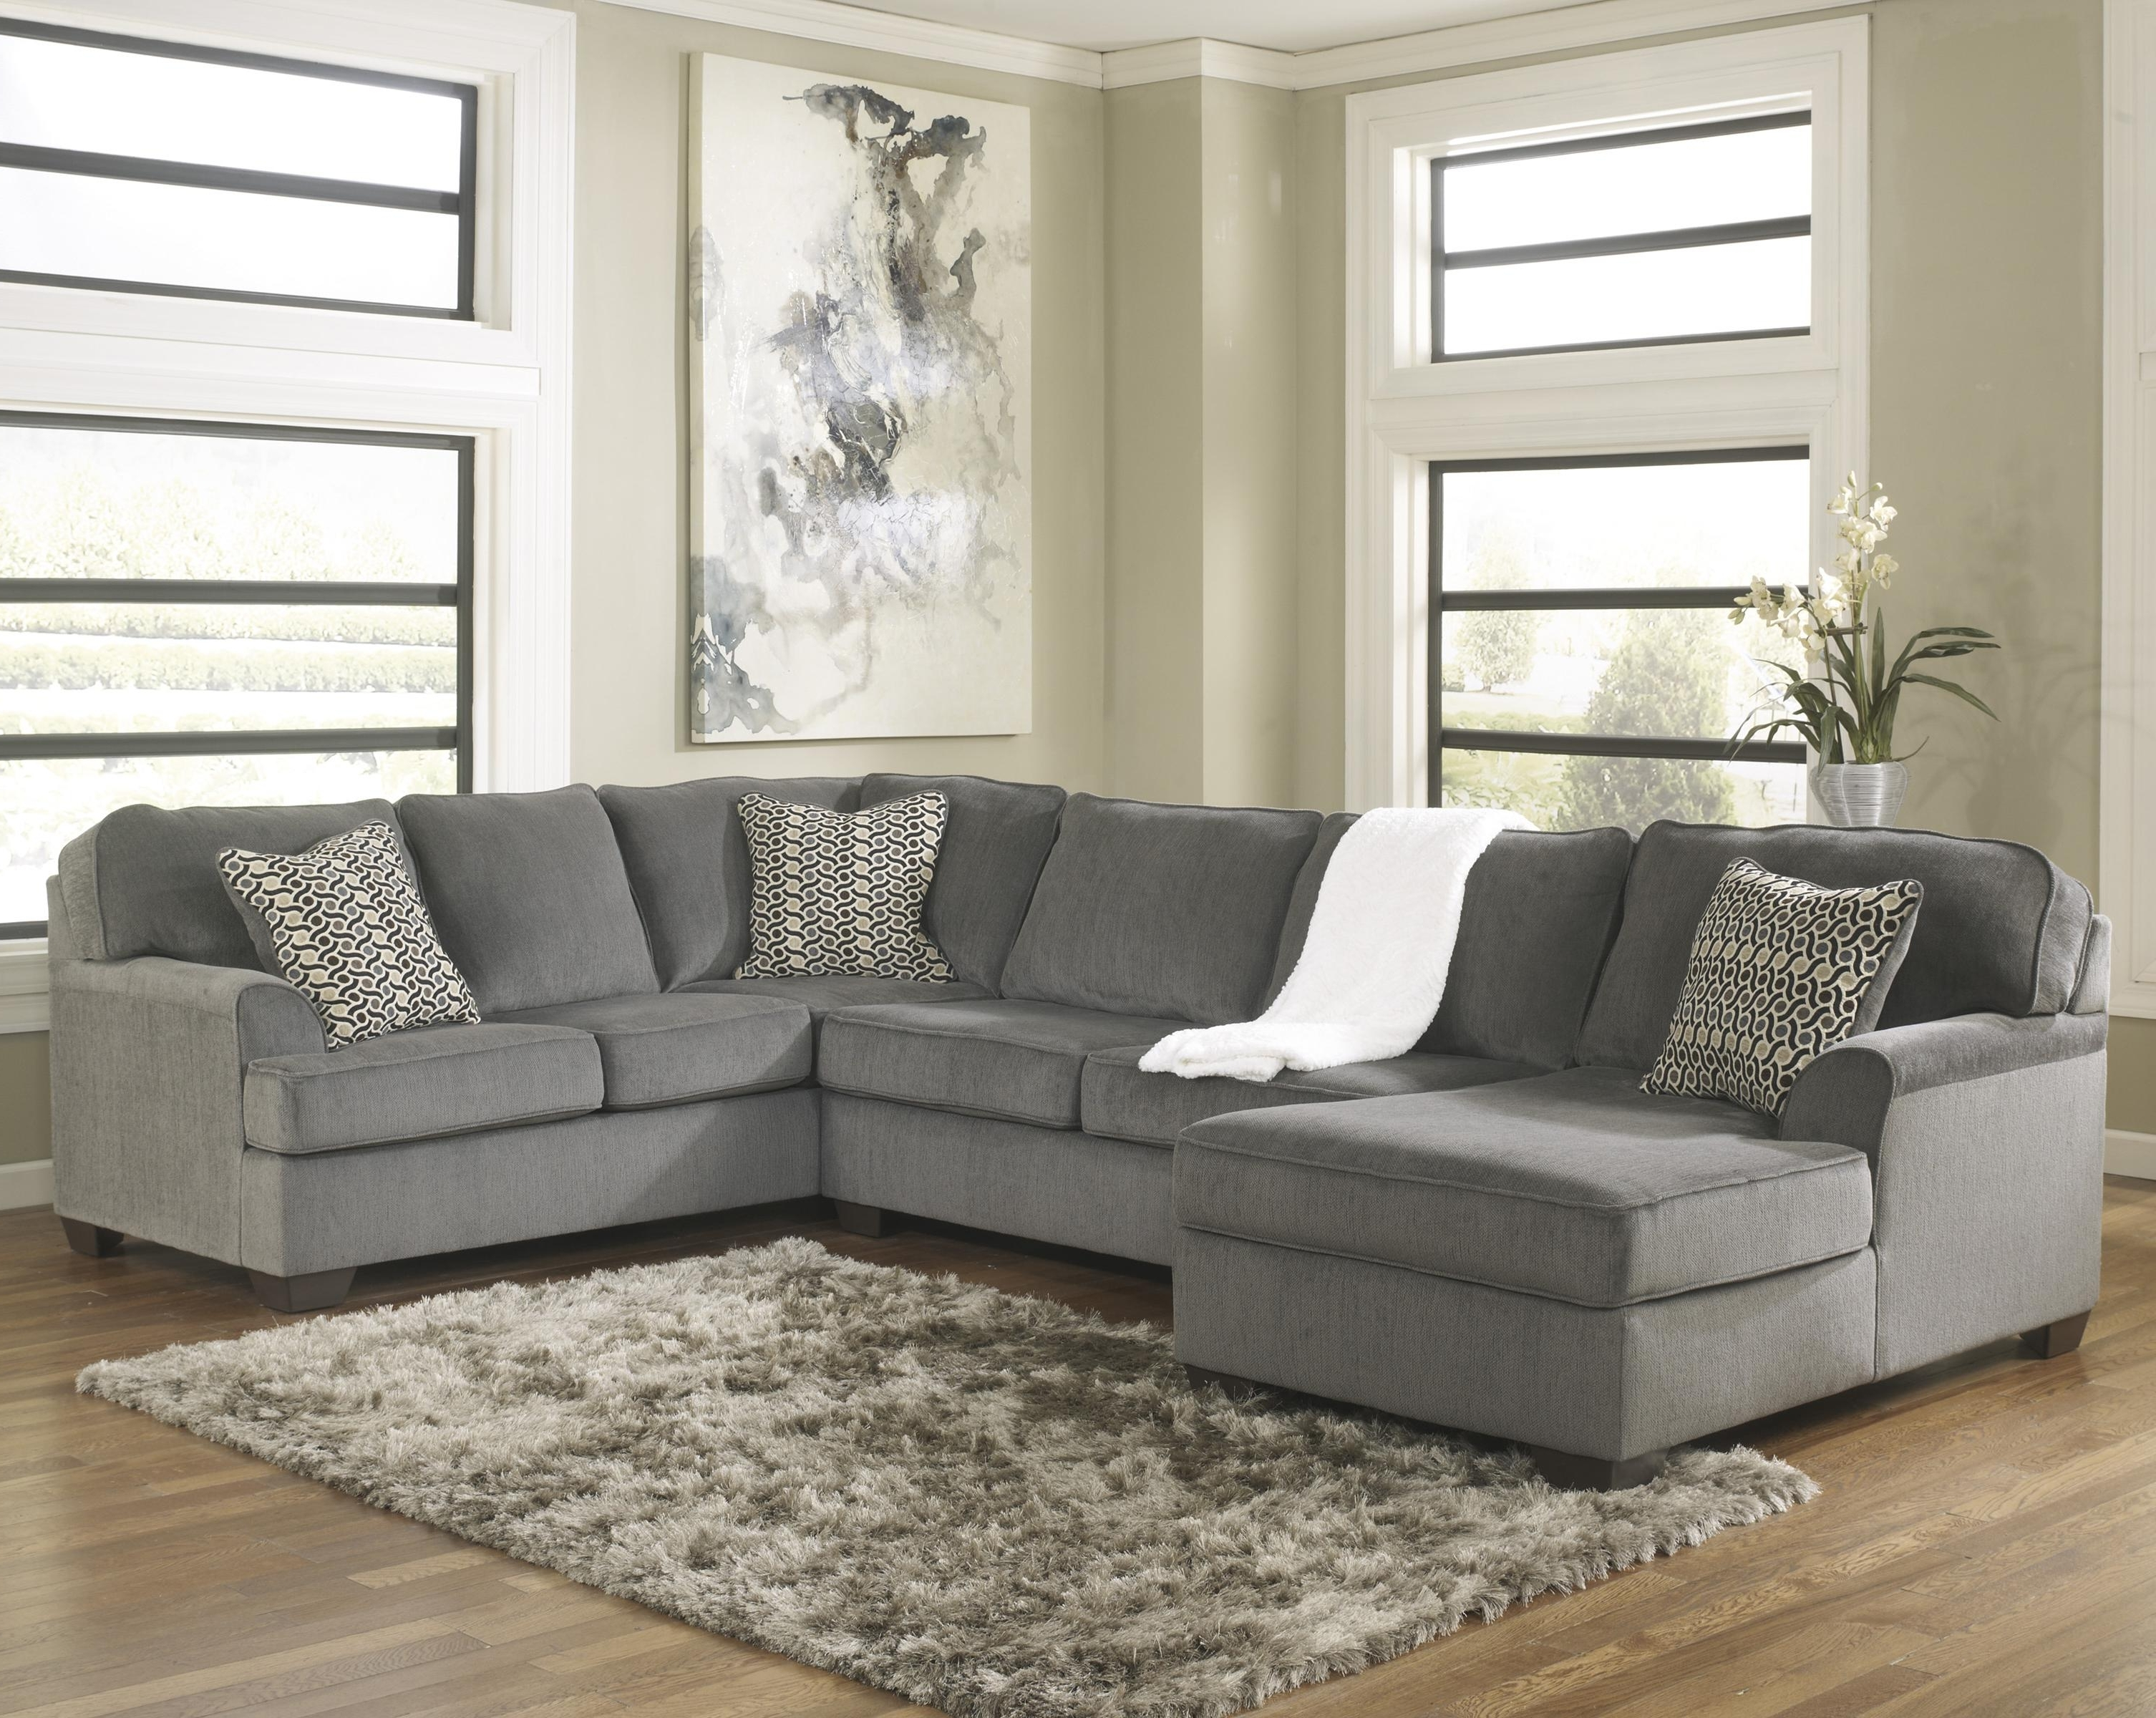 Favorite Ashley Furniture Sectionals With Chaise Pertaining To Ashley Furniture Loric – Smoke Contemporary 3 Piece Sectional With (View 7 of 15)